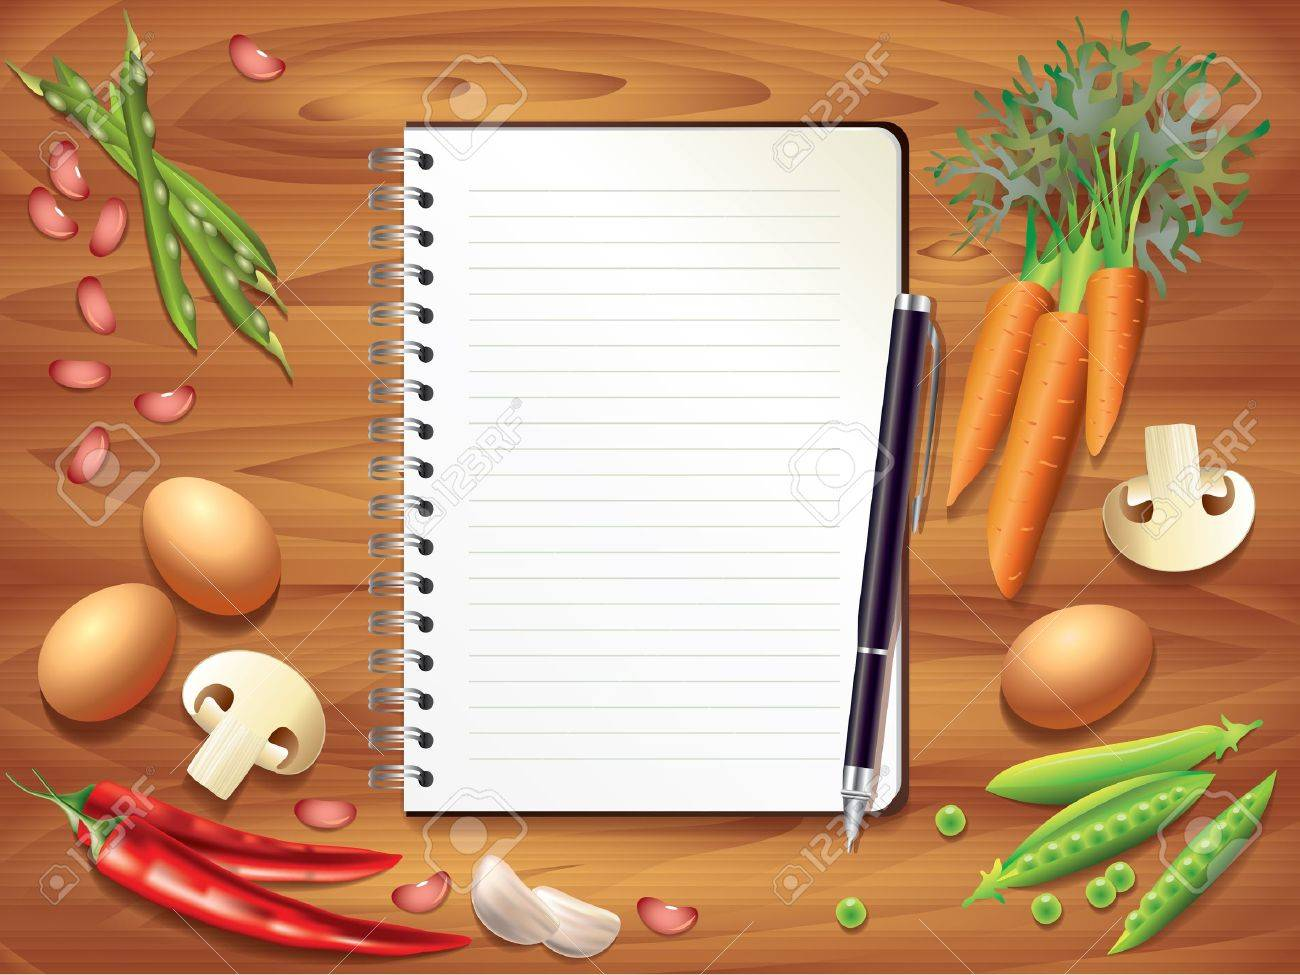 Kitchen table top view - Top View Recipe Book On Wooden Kitchen Table Food Ingredients Photo Realistic Stock Vector